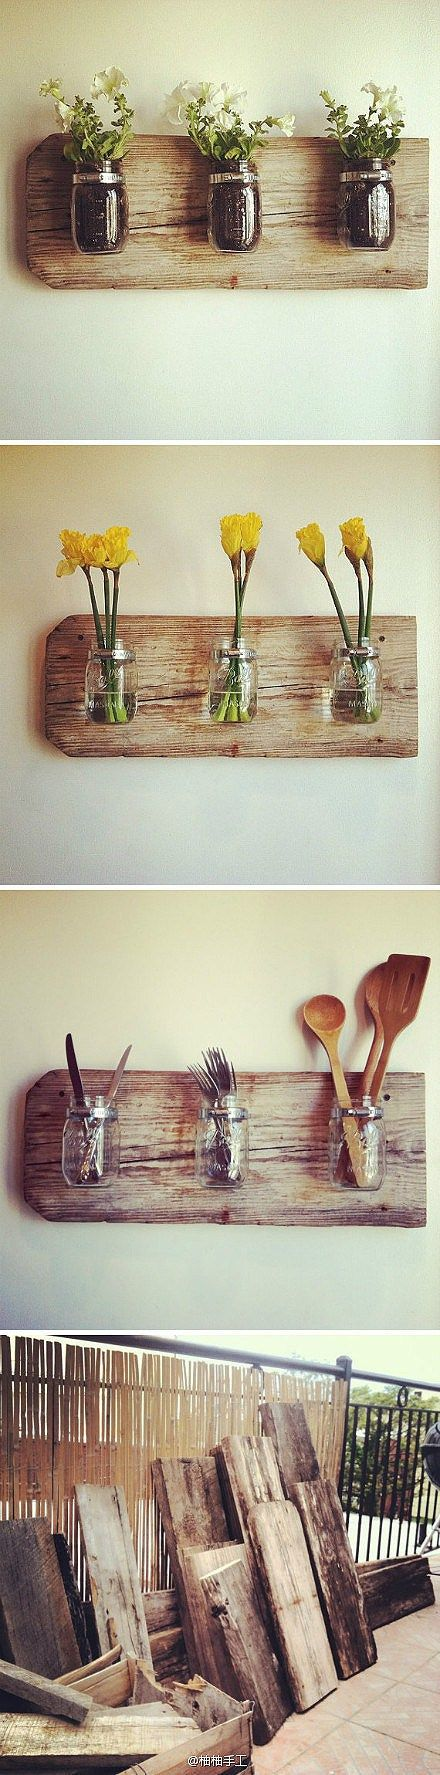 diy house decor | DIY Home Decor with Mason Jars and Reclaimed Wood